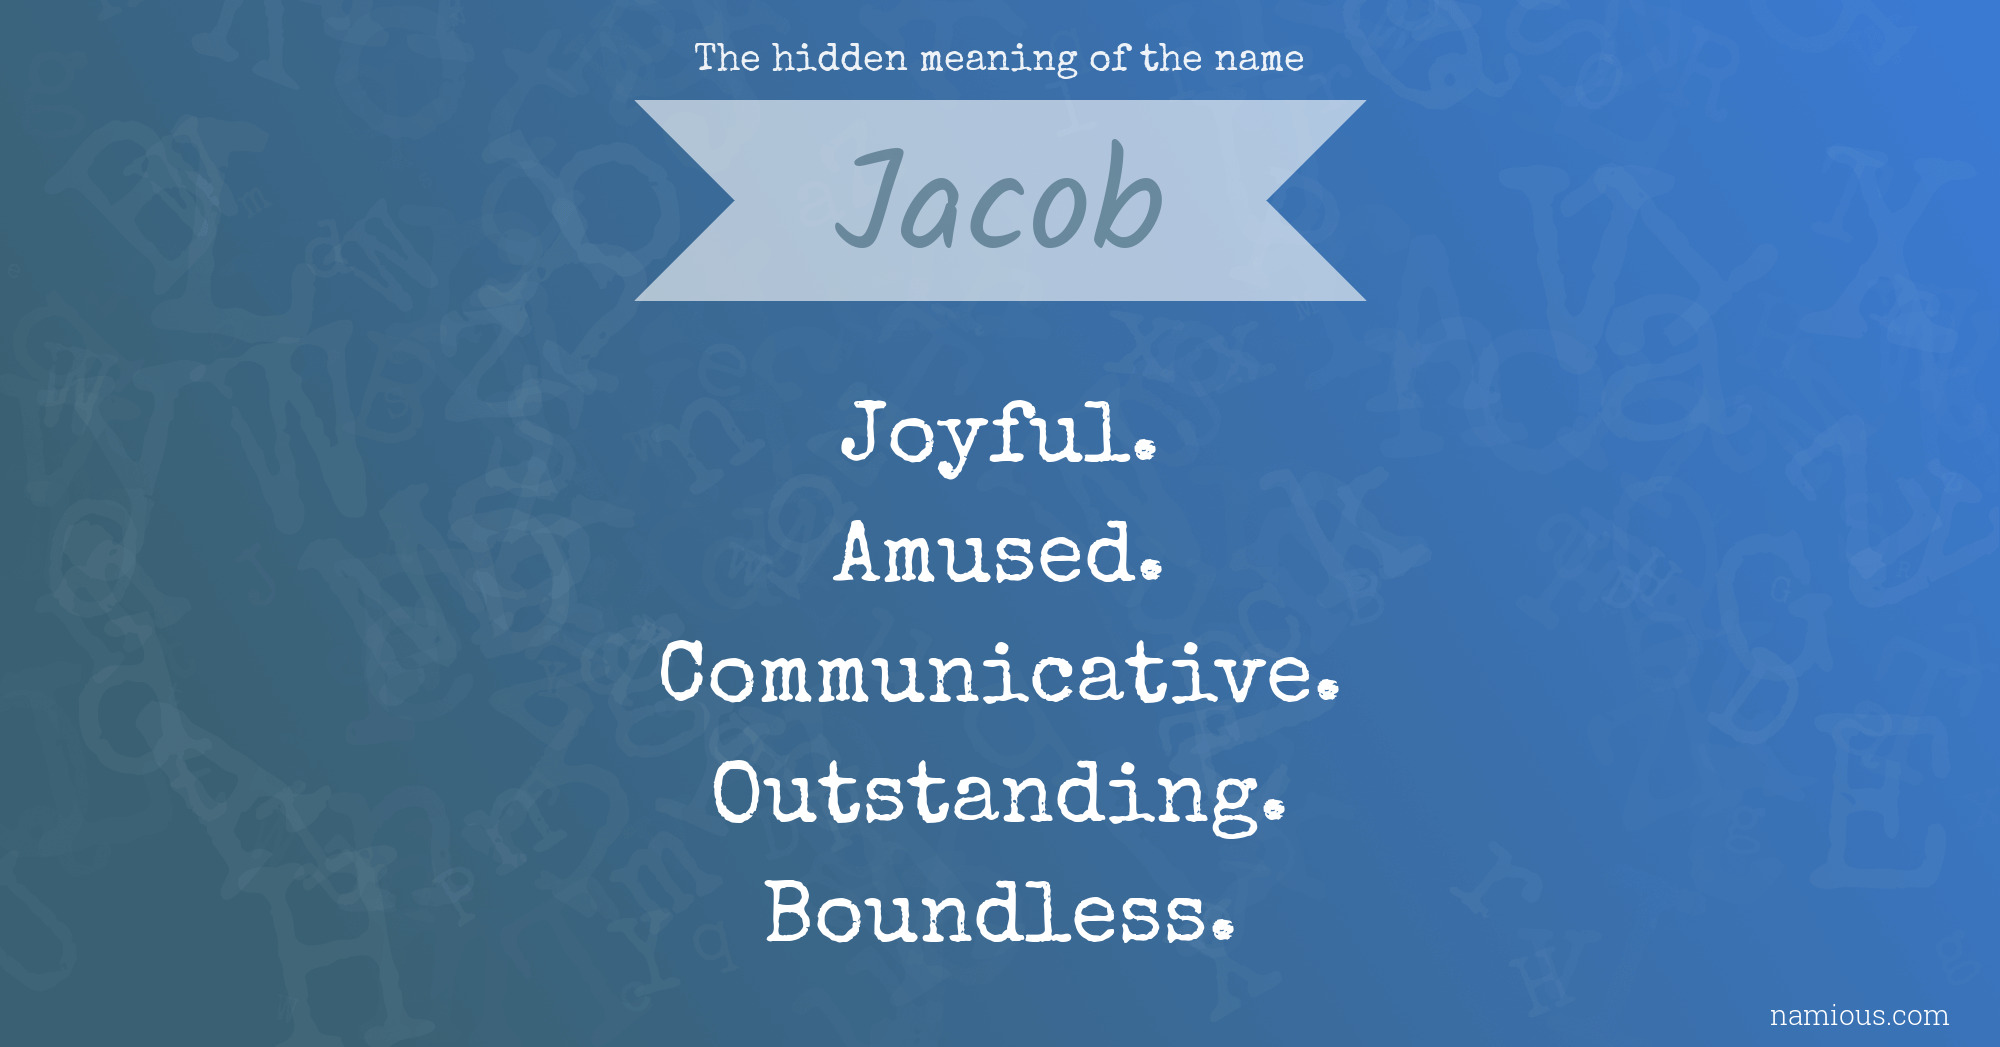 The hidden meaning of the name Jacob